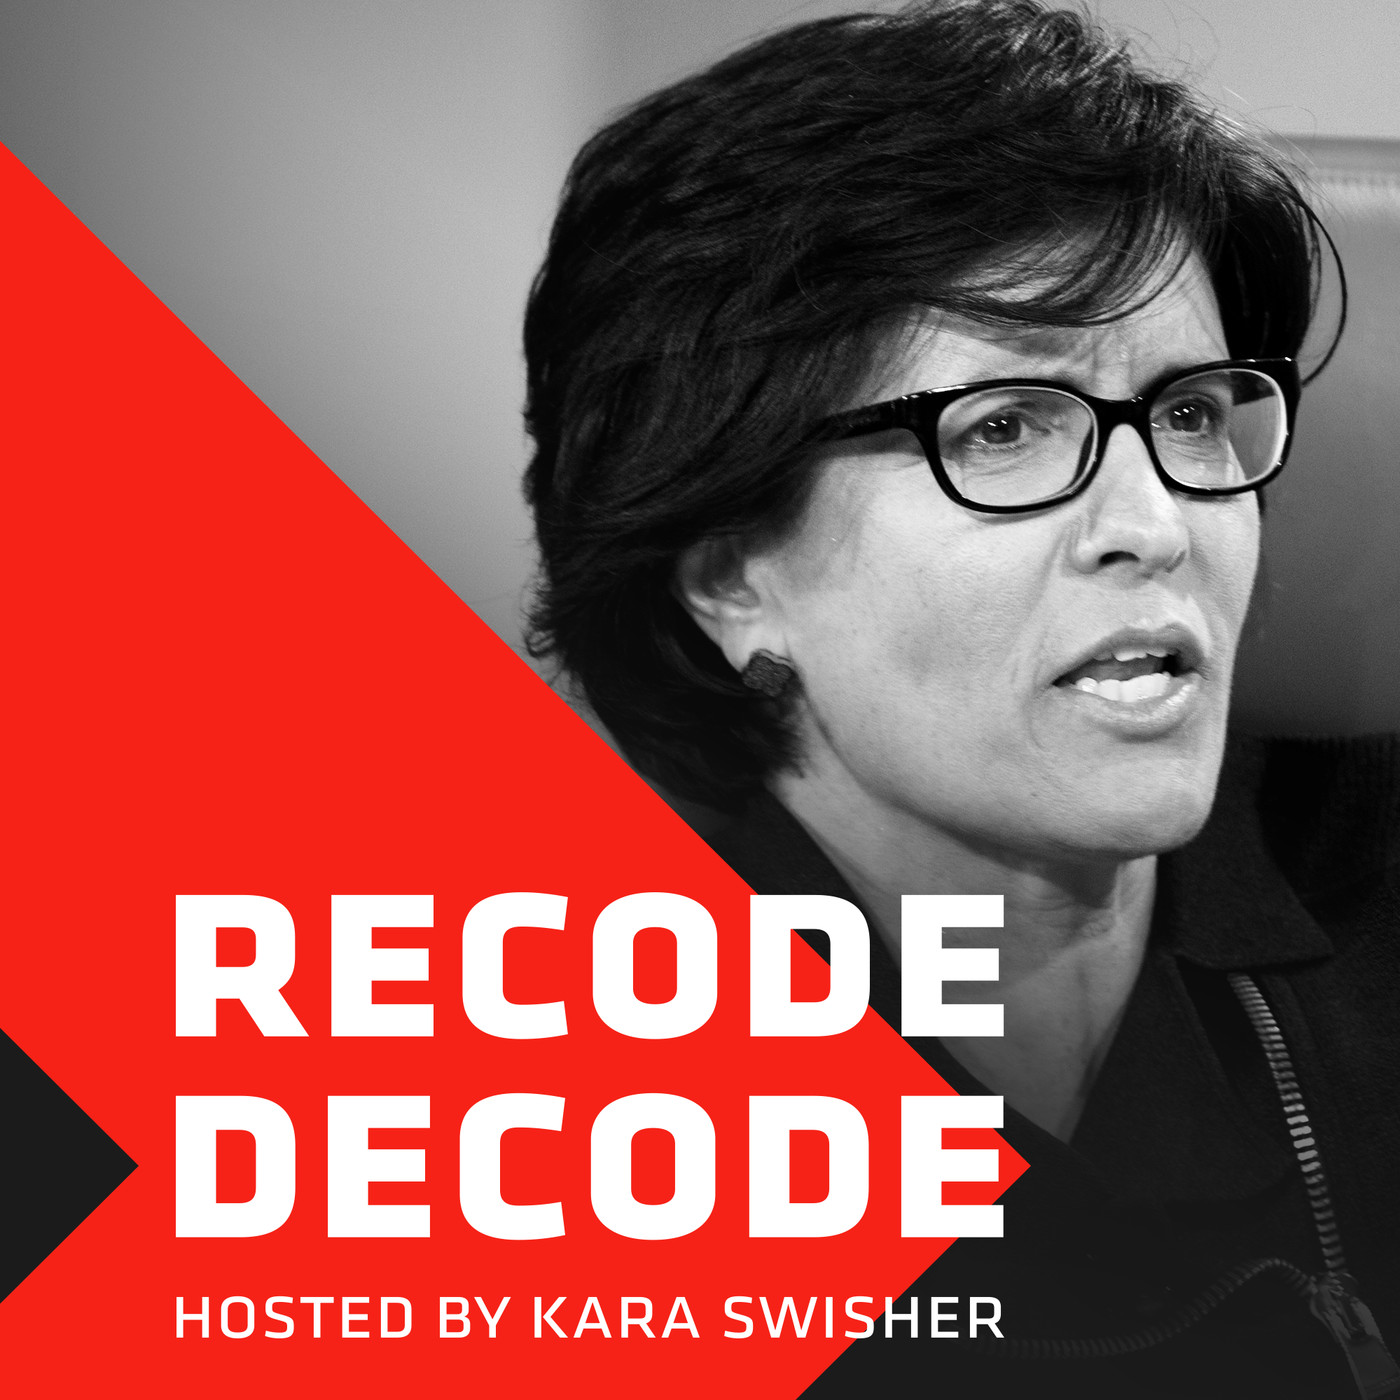 Recode Decode, hosted by Kara Swisher